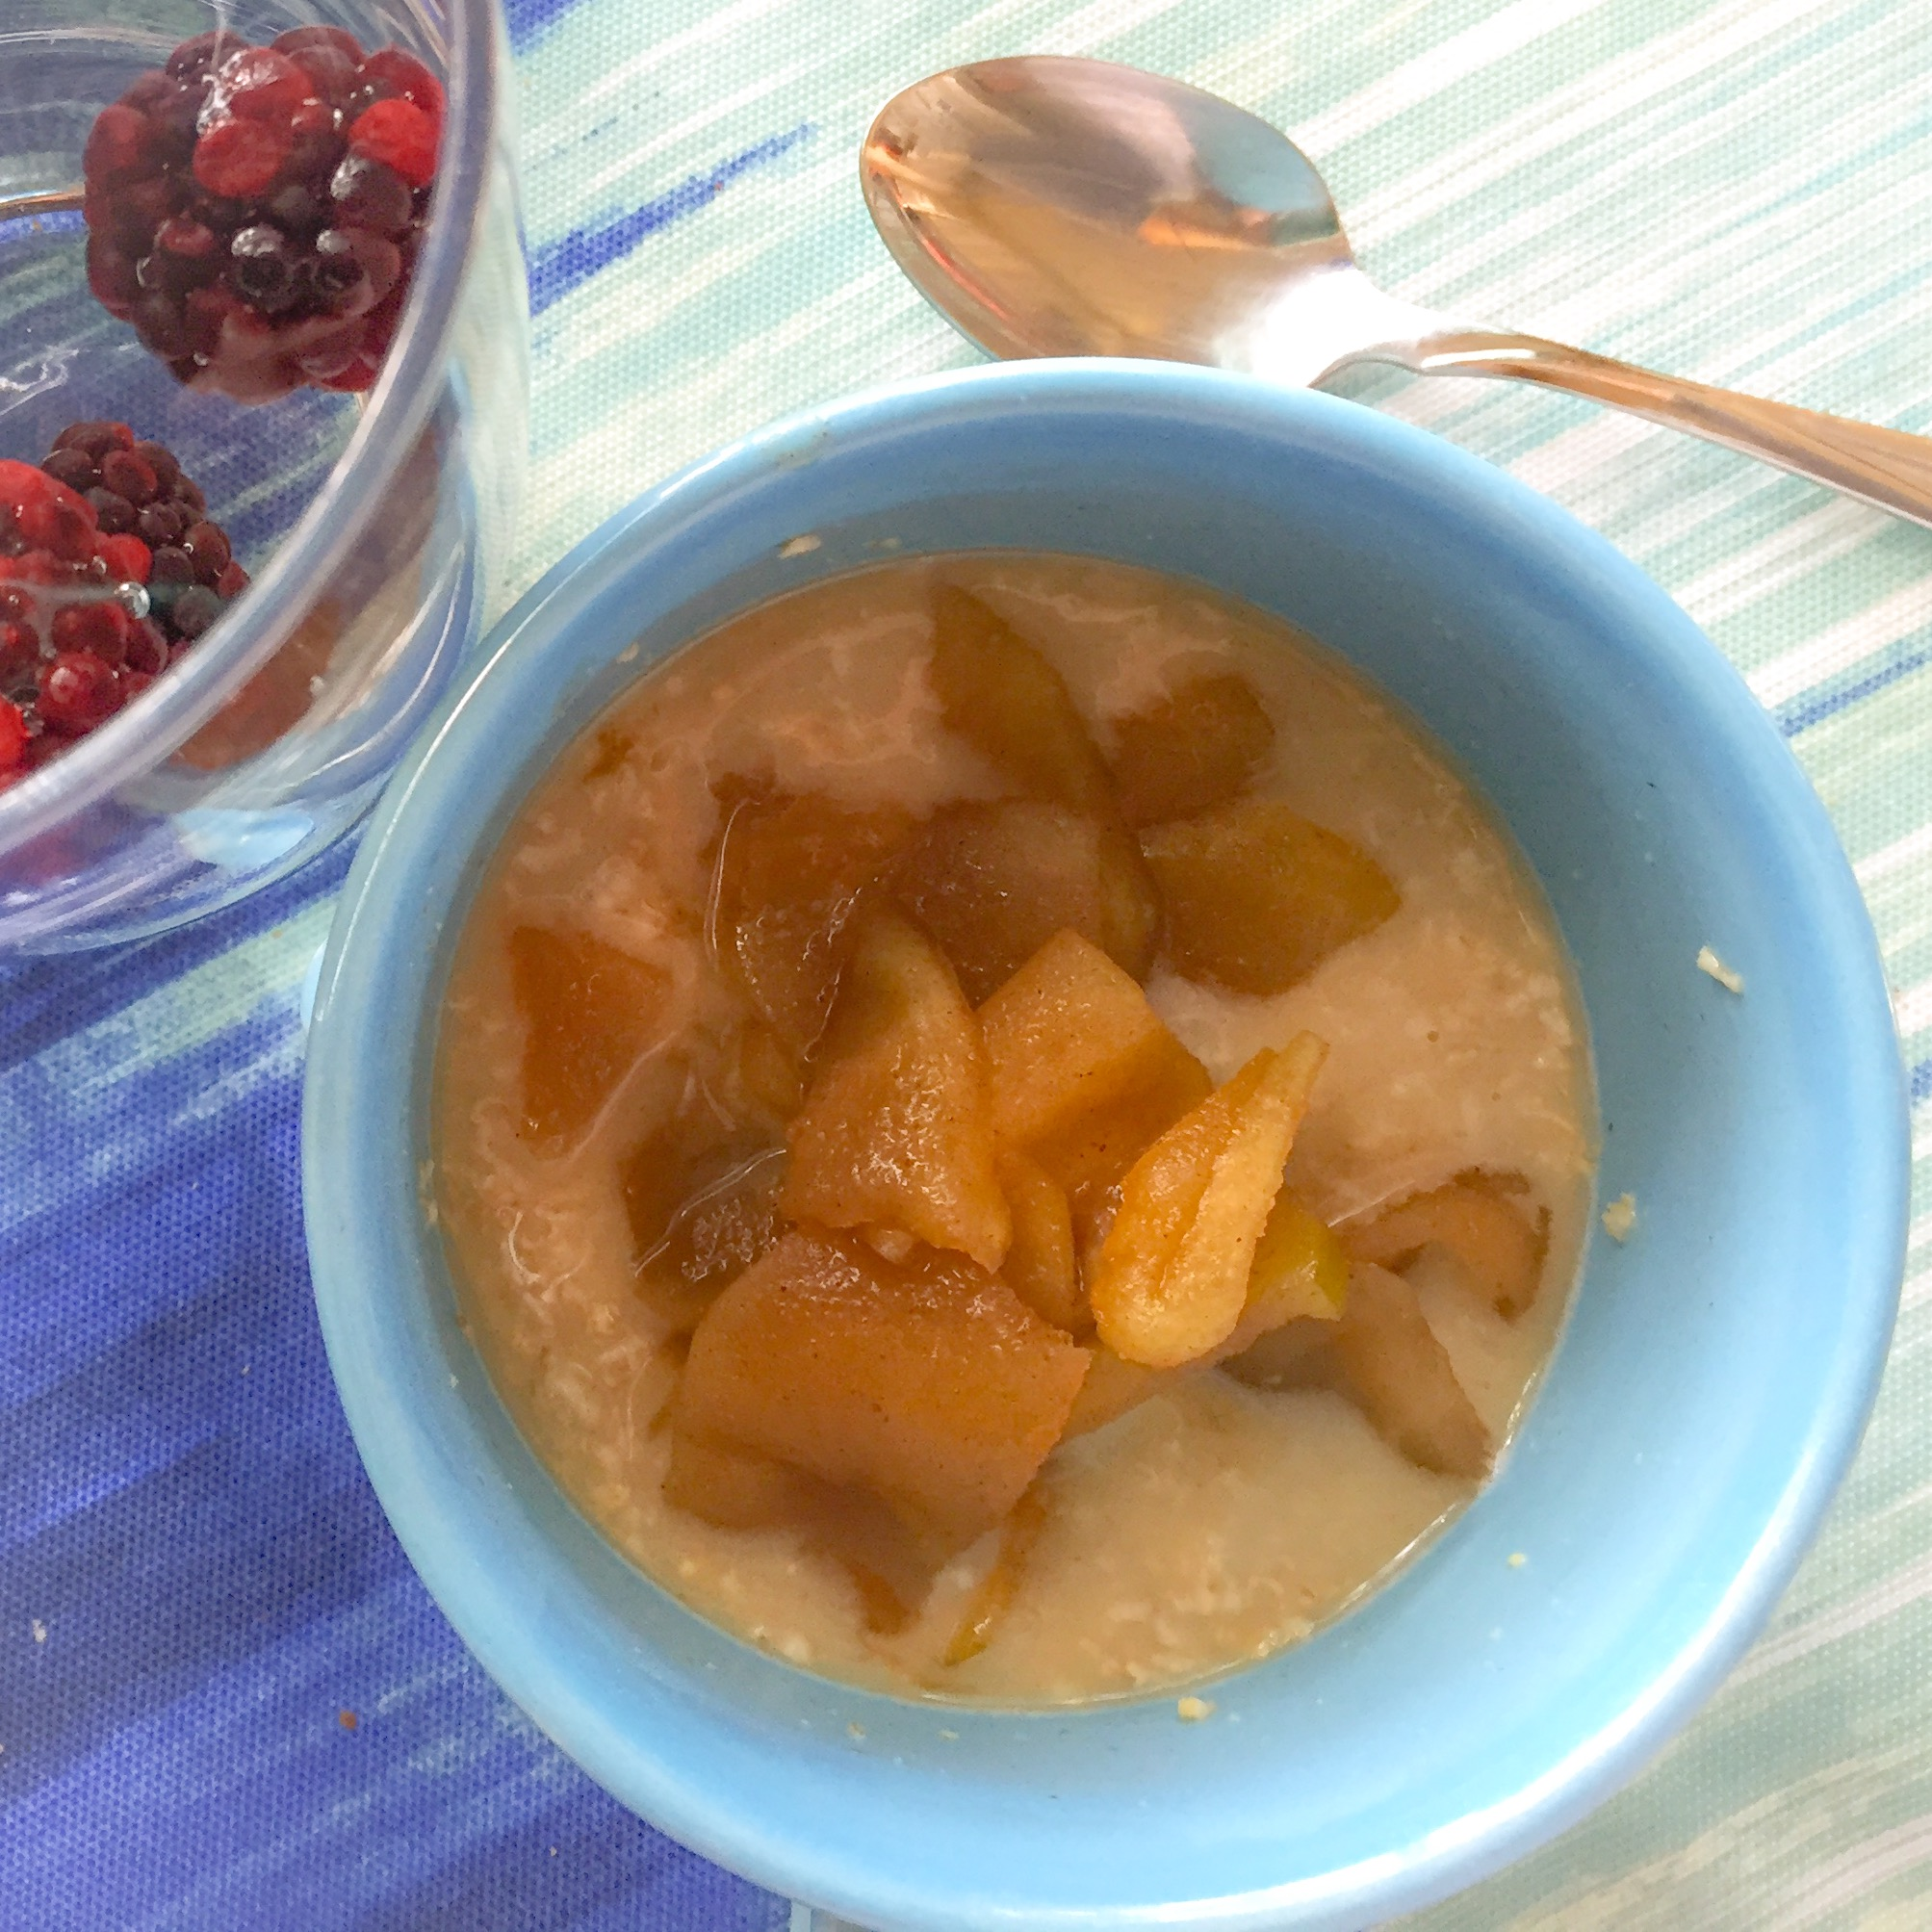 Gluten-free Cinnamon Apples over Gluten-free Oatmeal